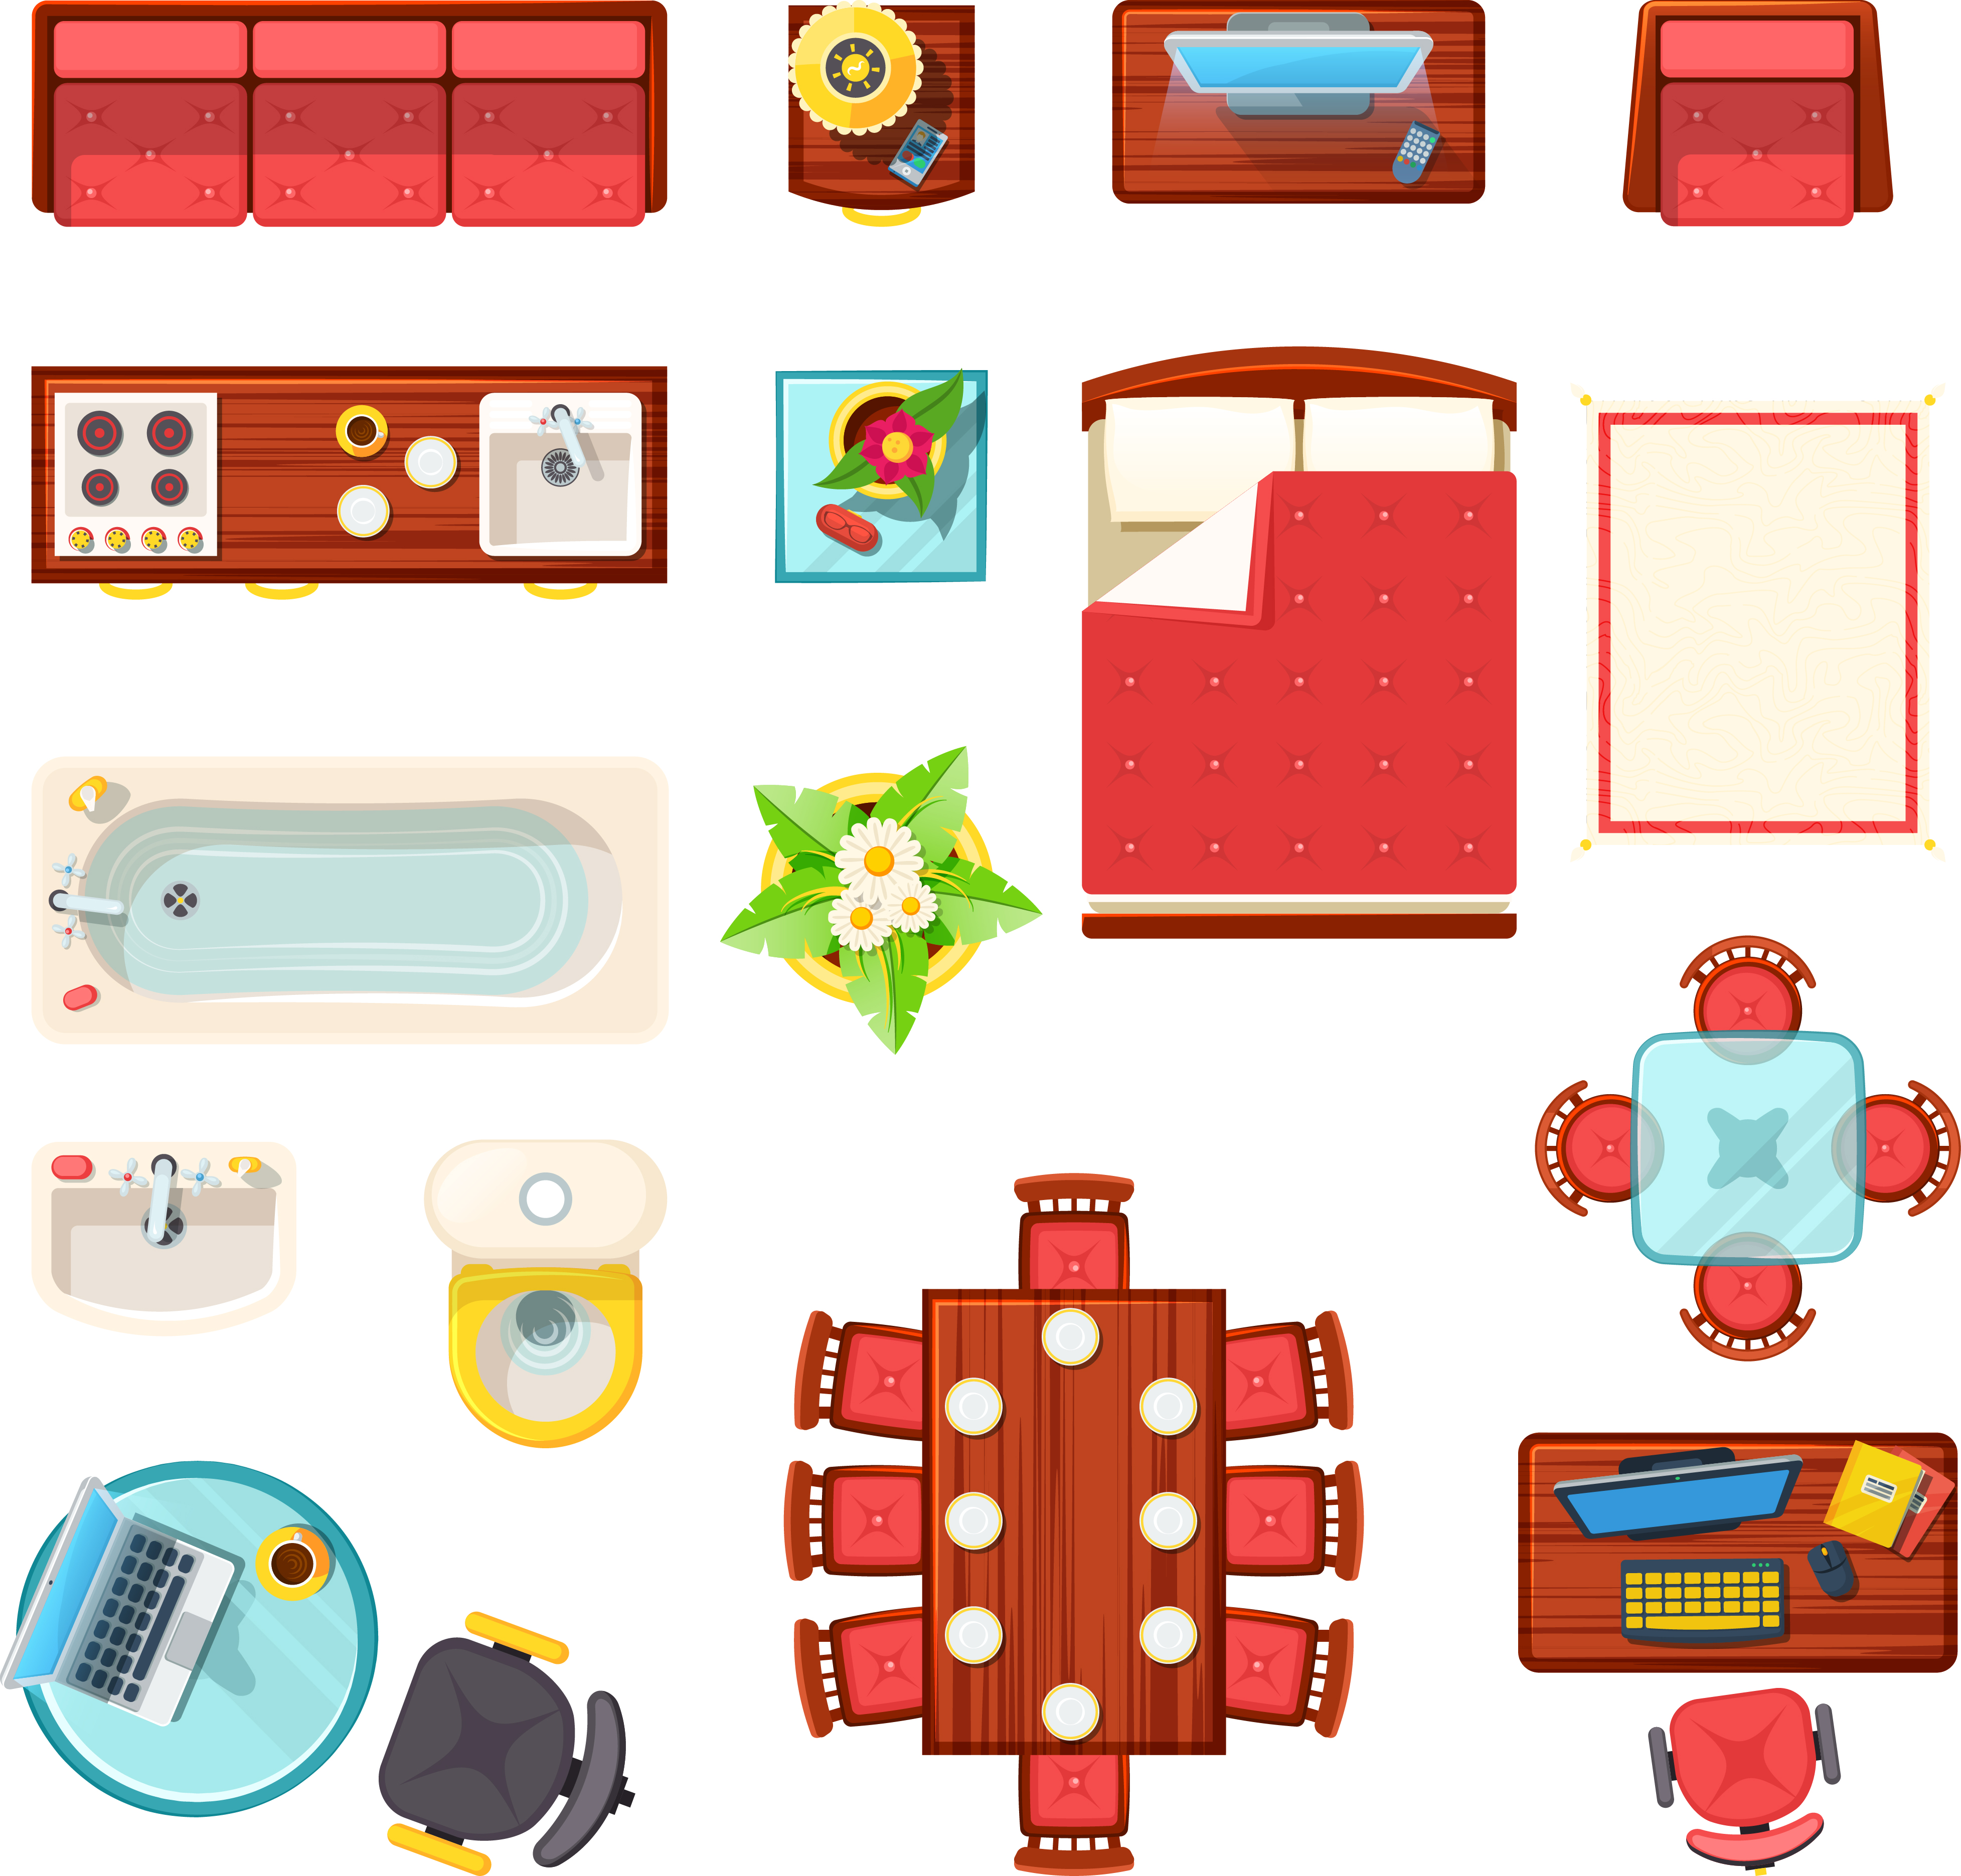 Home Furniture Top View Set - Download Free Vector Art ...